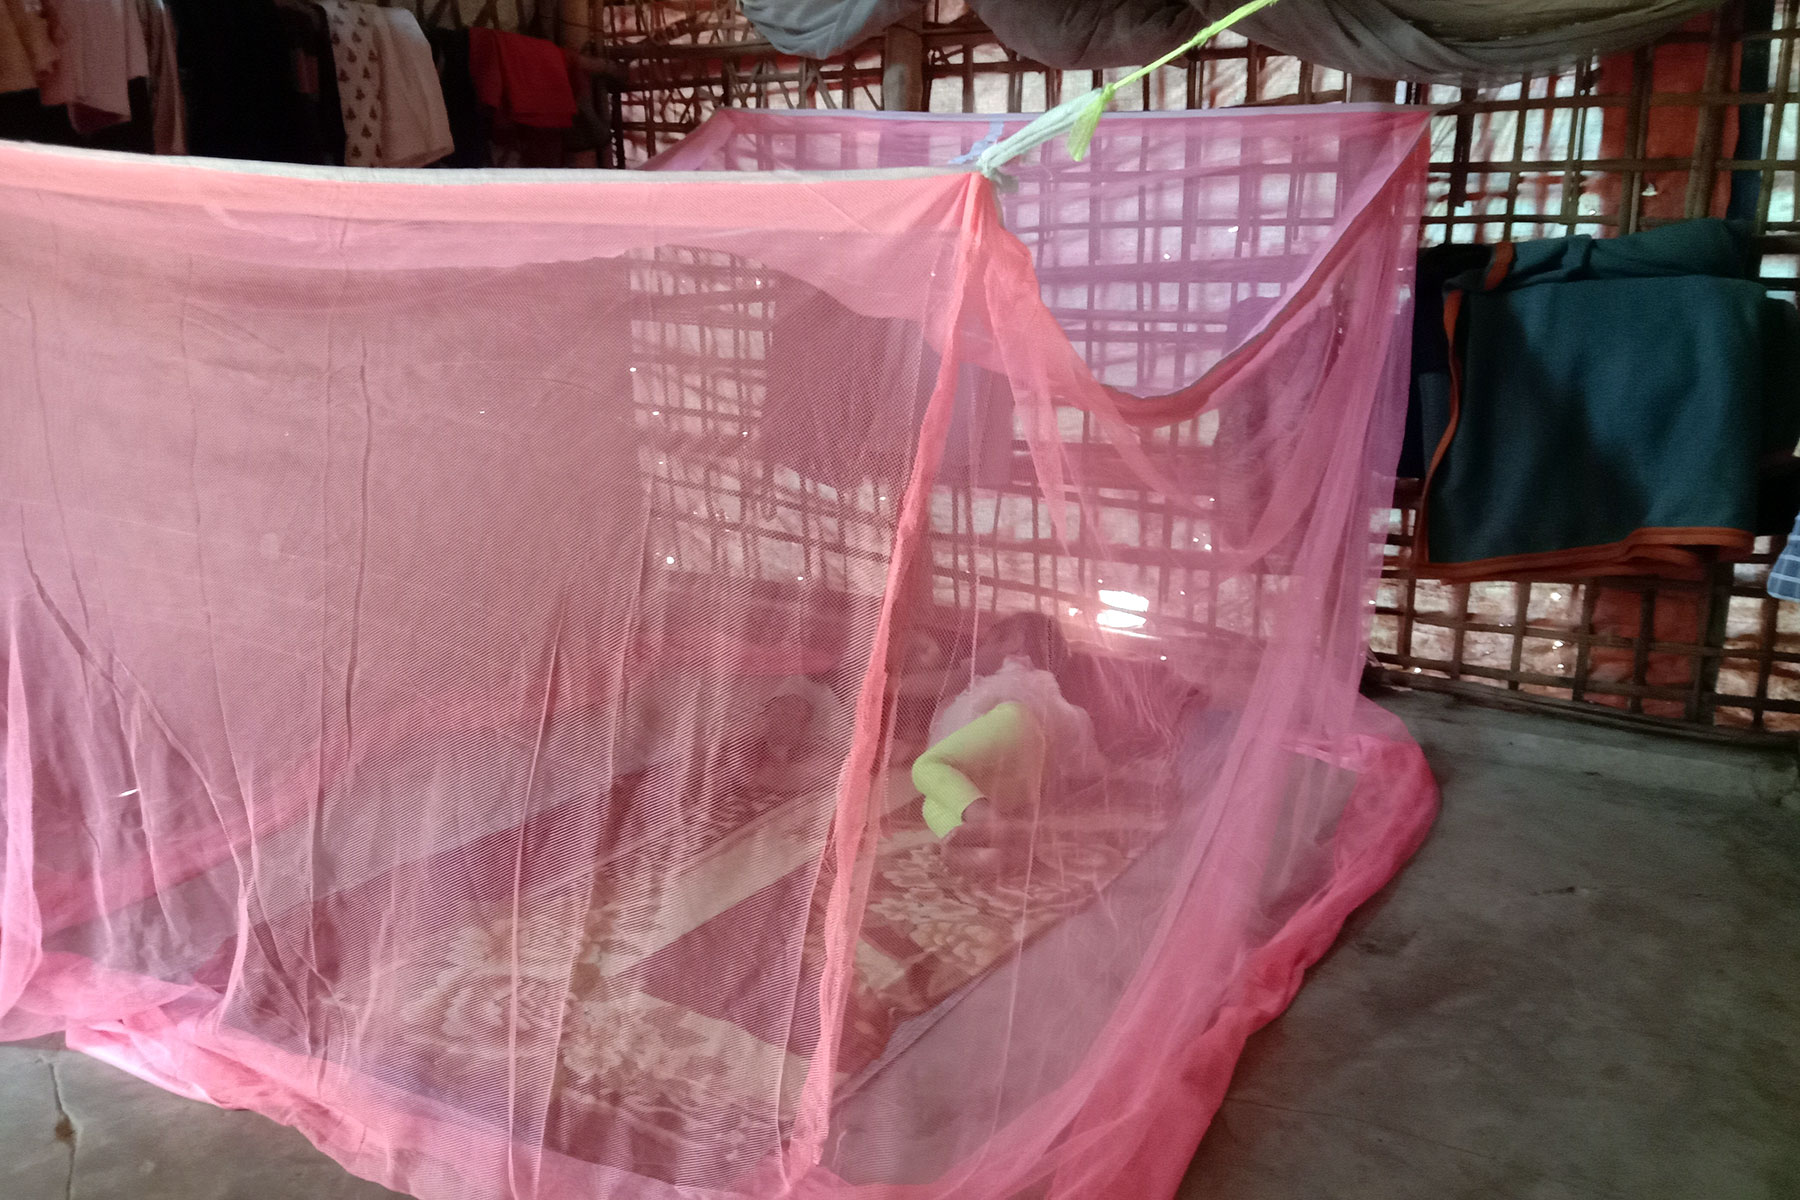 Mosquitoes are a big concern in the camp. The site is overcrowded, standing water during monsoon makes it easy for the insects to breed. Mosquitoes are known for spreading diseases like Dengue and malaria, especially to children.